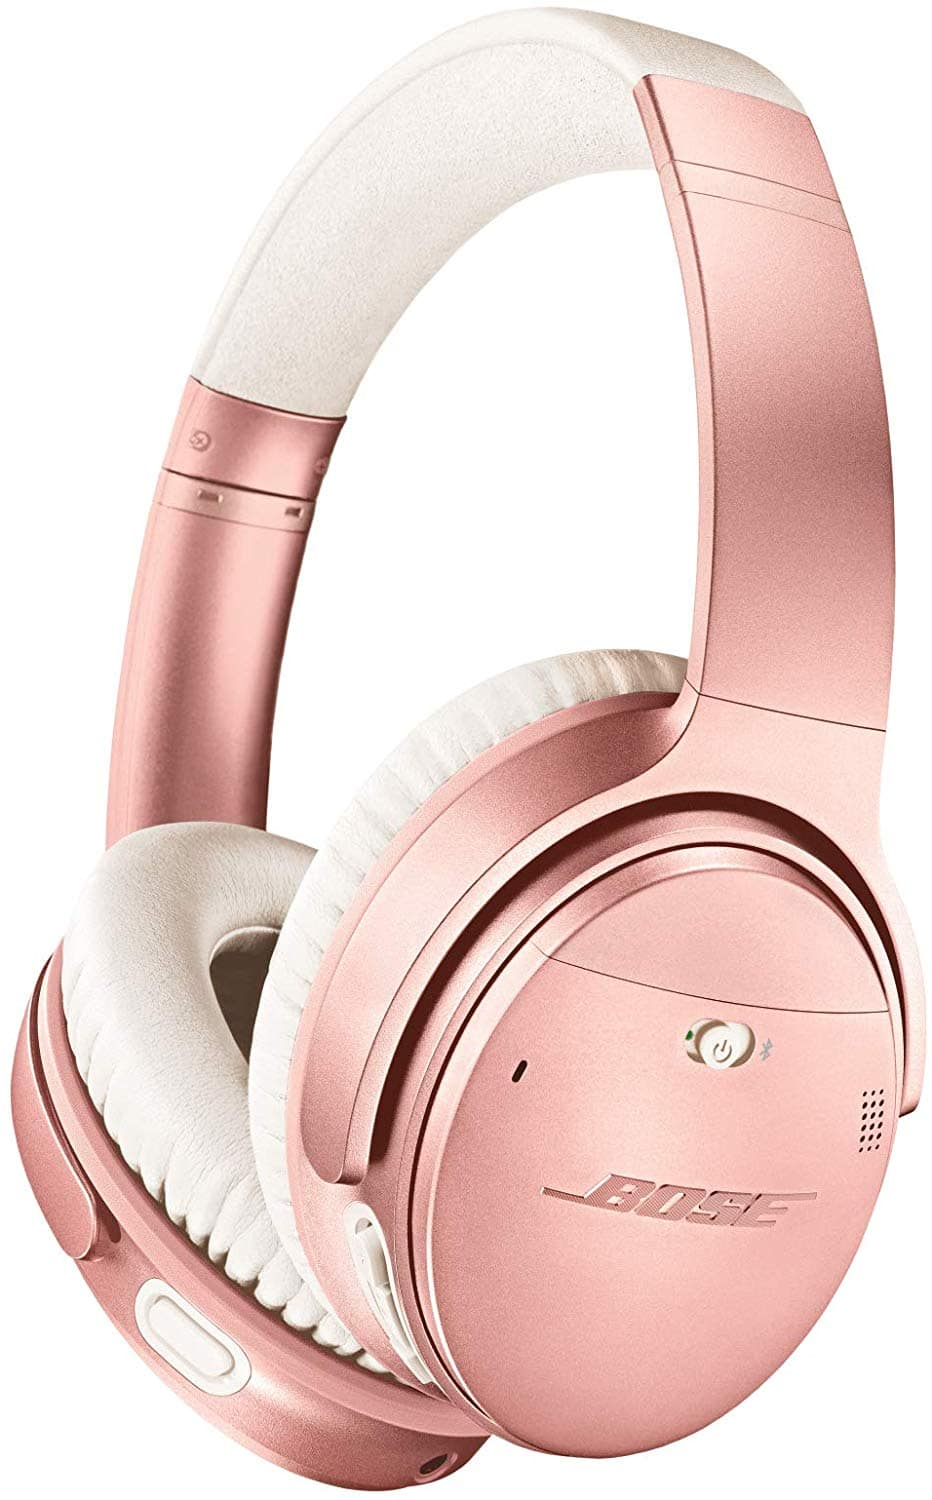 Bose QuietComfort 35 II Wireless Bluetooth Headphones, Noise-Cancelling, with Alexa voice control, enabled with Bose AR - Rose Gold - $219 + FS @Amazon